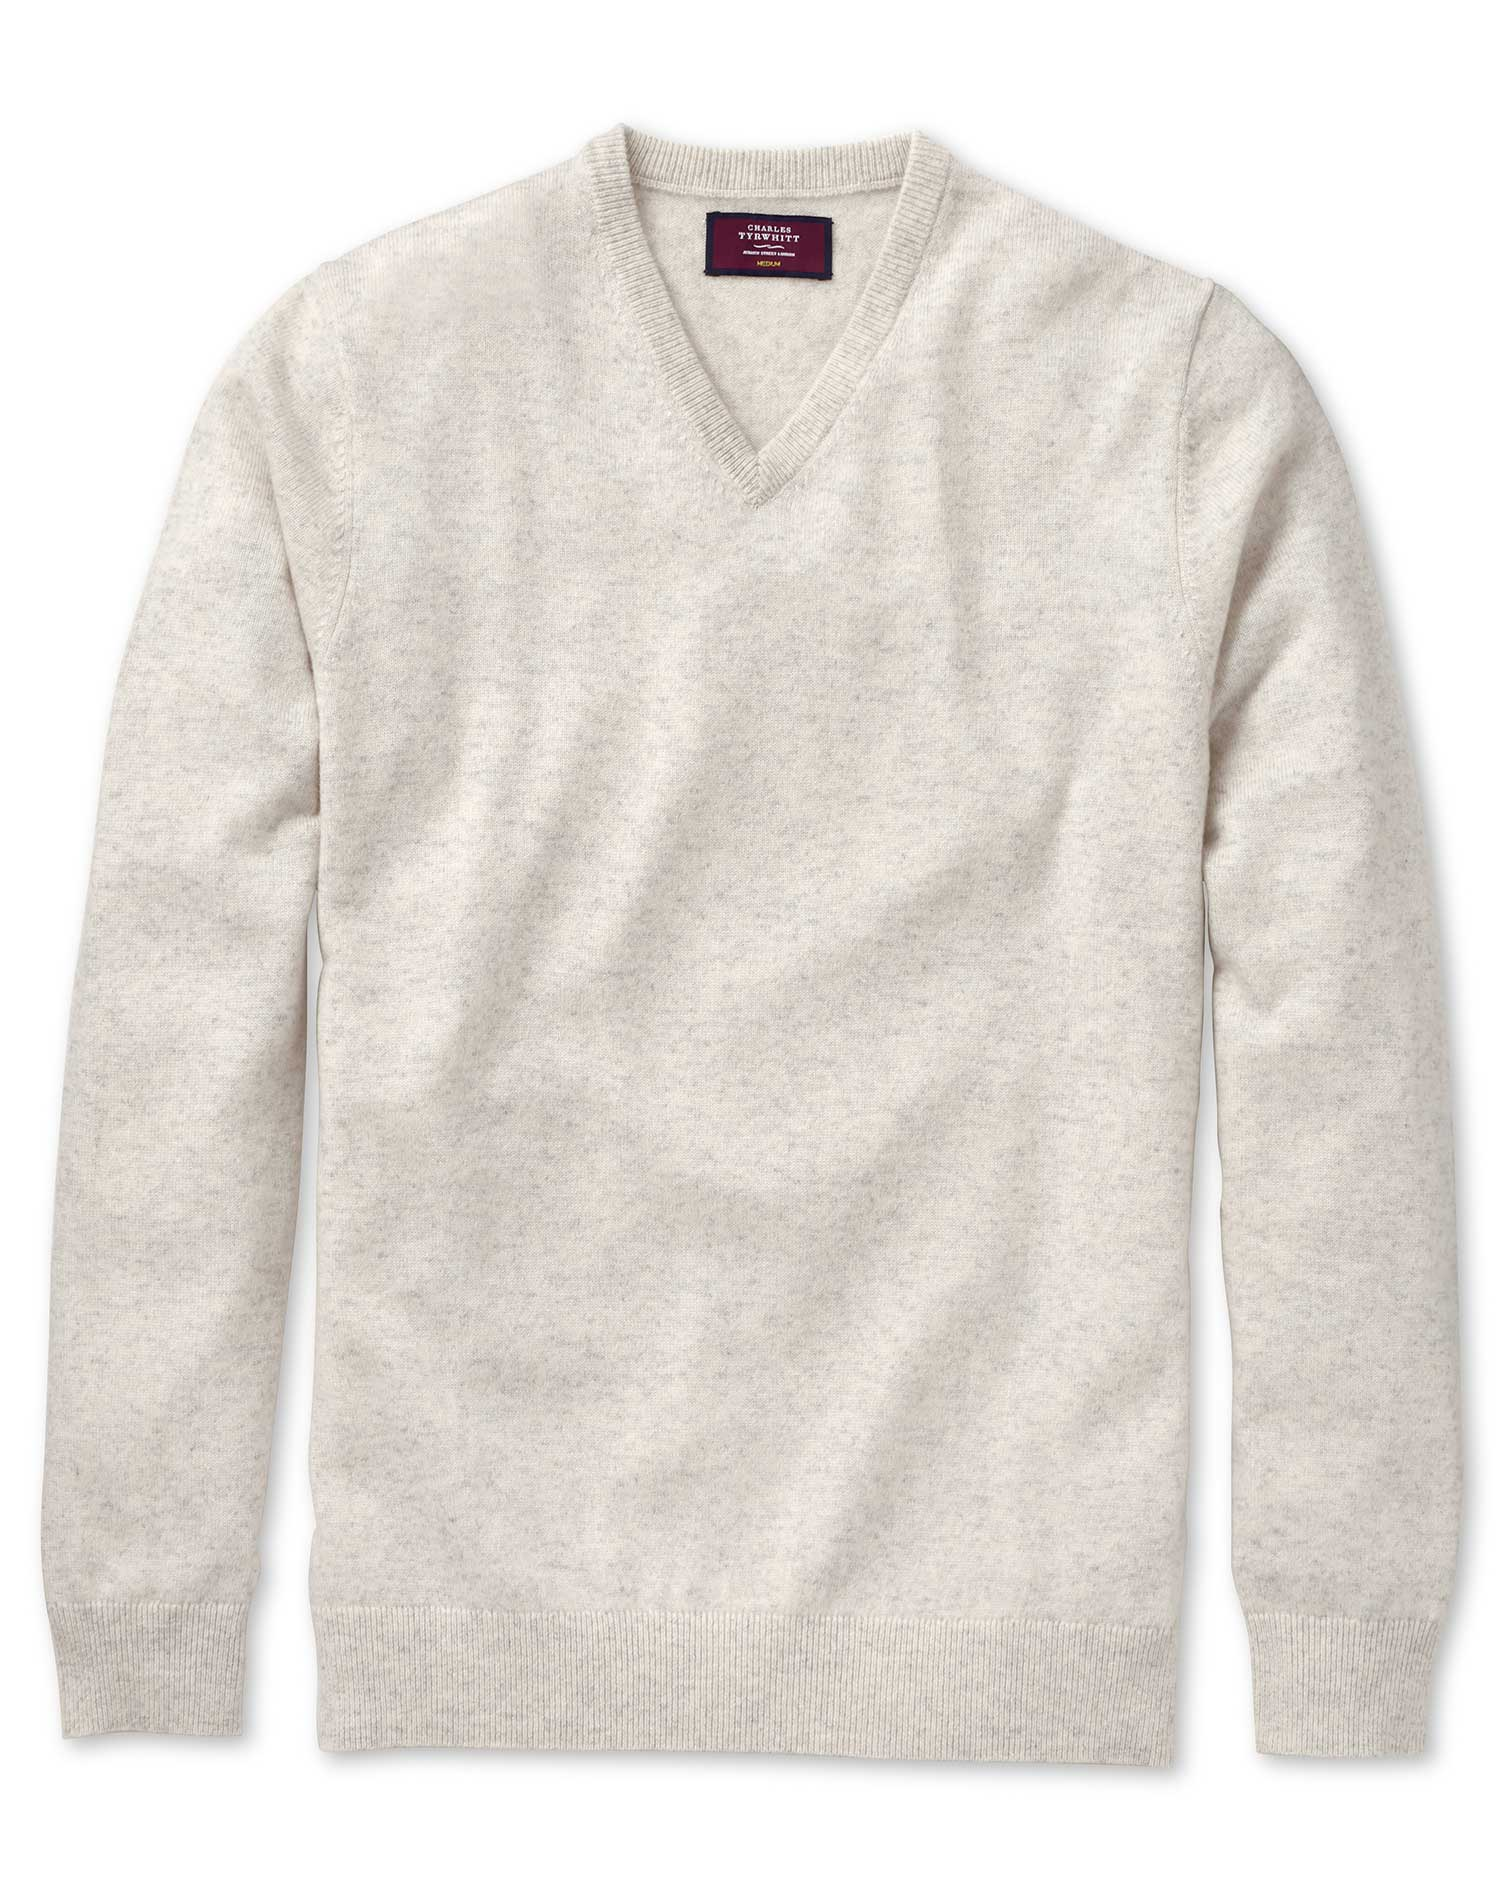 Chalk White Cashmere V-Neck Sweater Size Large by Charles Tyrwhitt